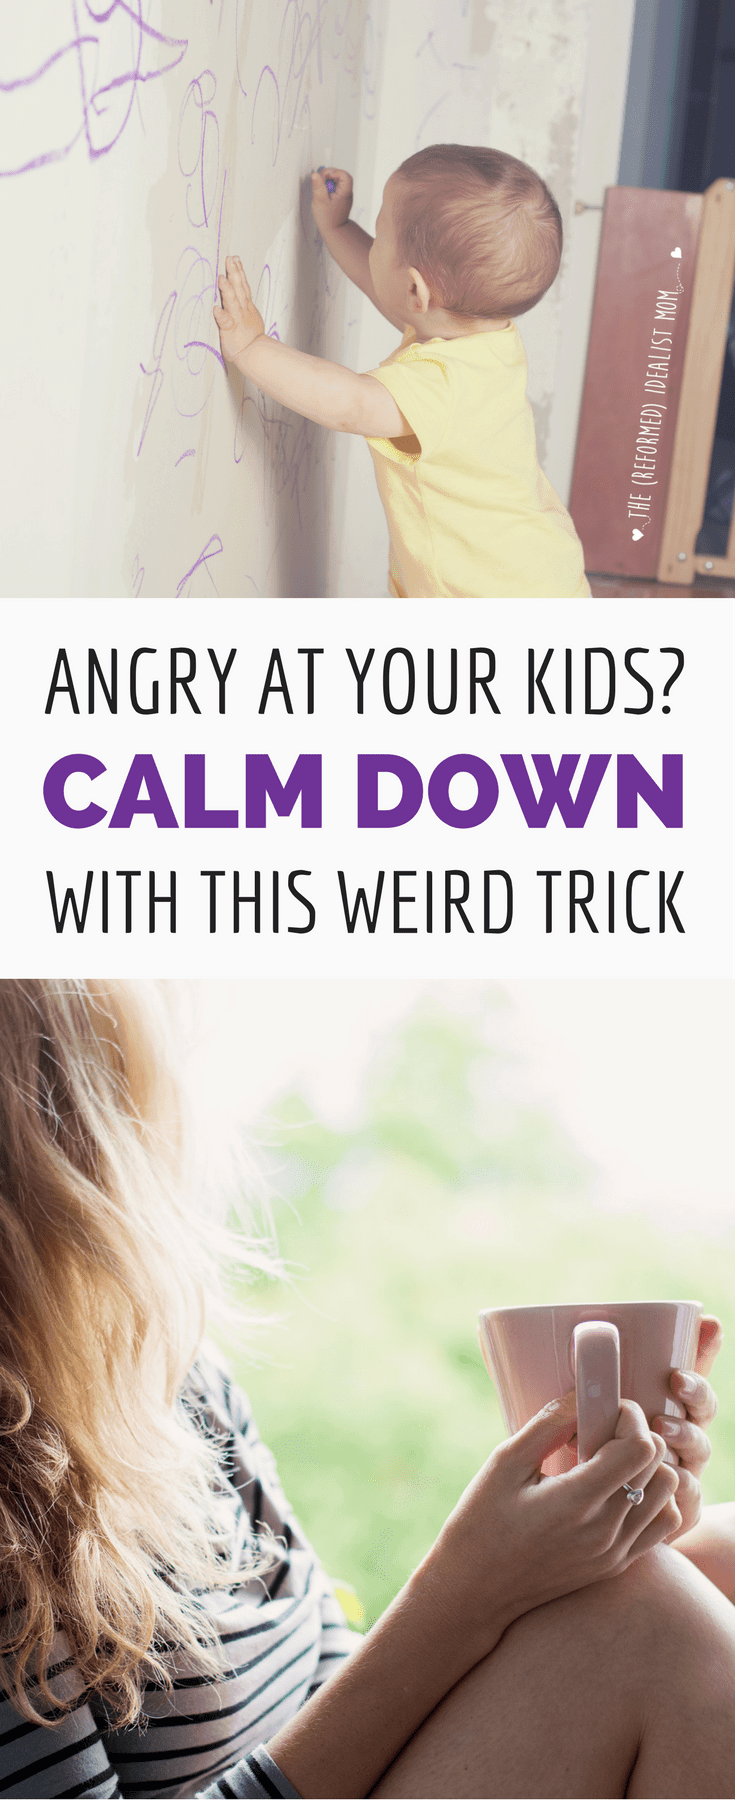 When your kids make you angry, here's a surefire parenting tip to make the anger and frustration disappear so you can calm down. This may sound weird, but it really works. Perfect for stressed moms!